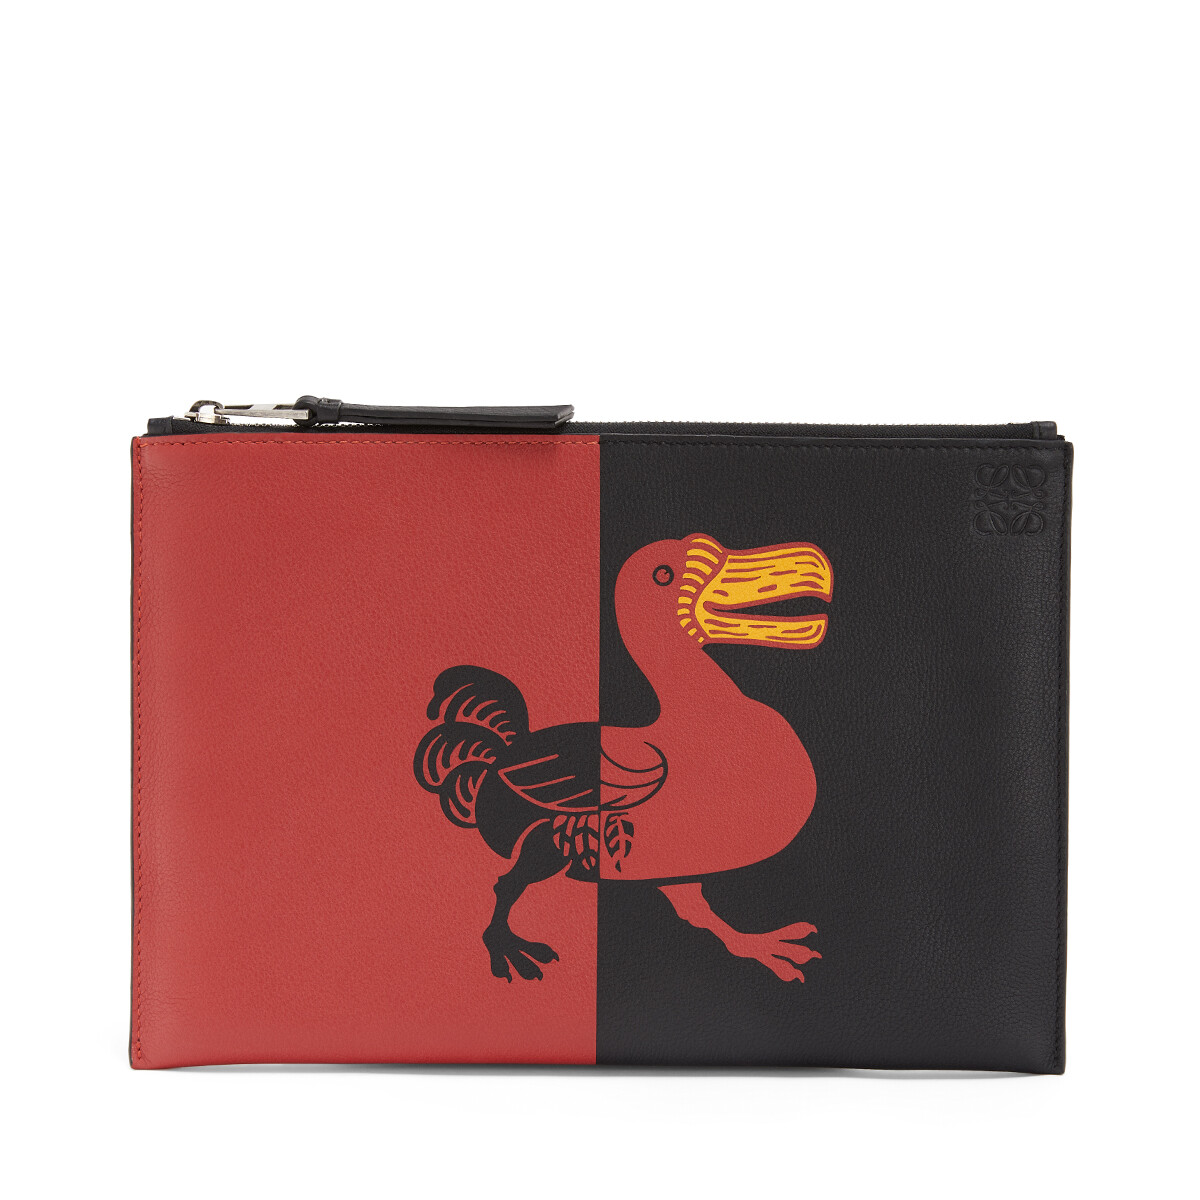 LOEWE Flat Pouch Herald 黑色/红色 front